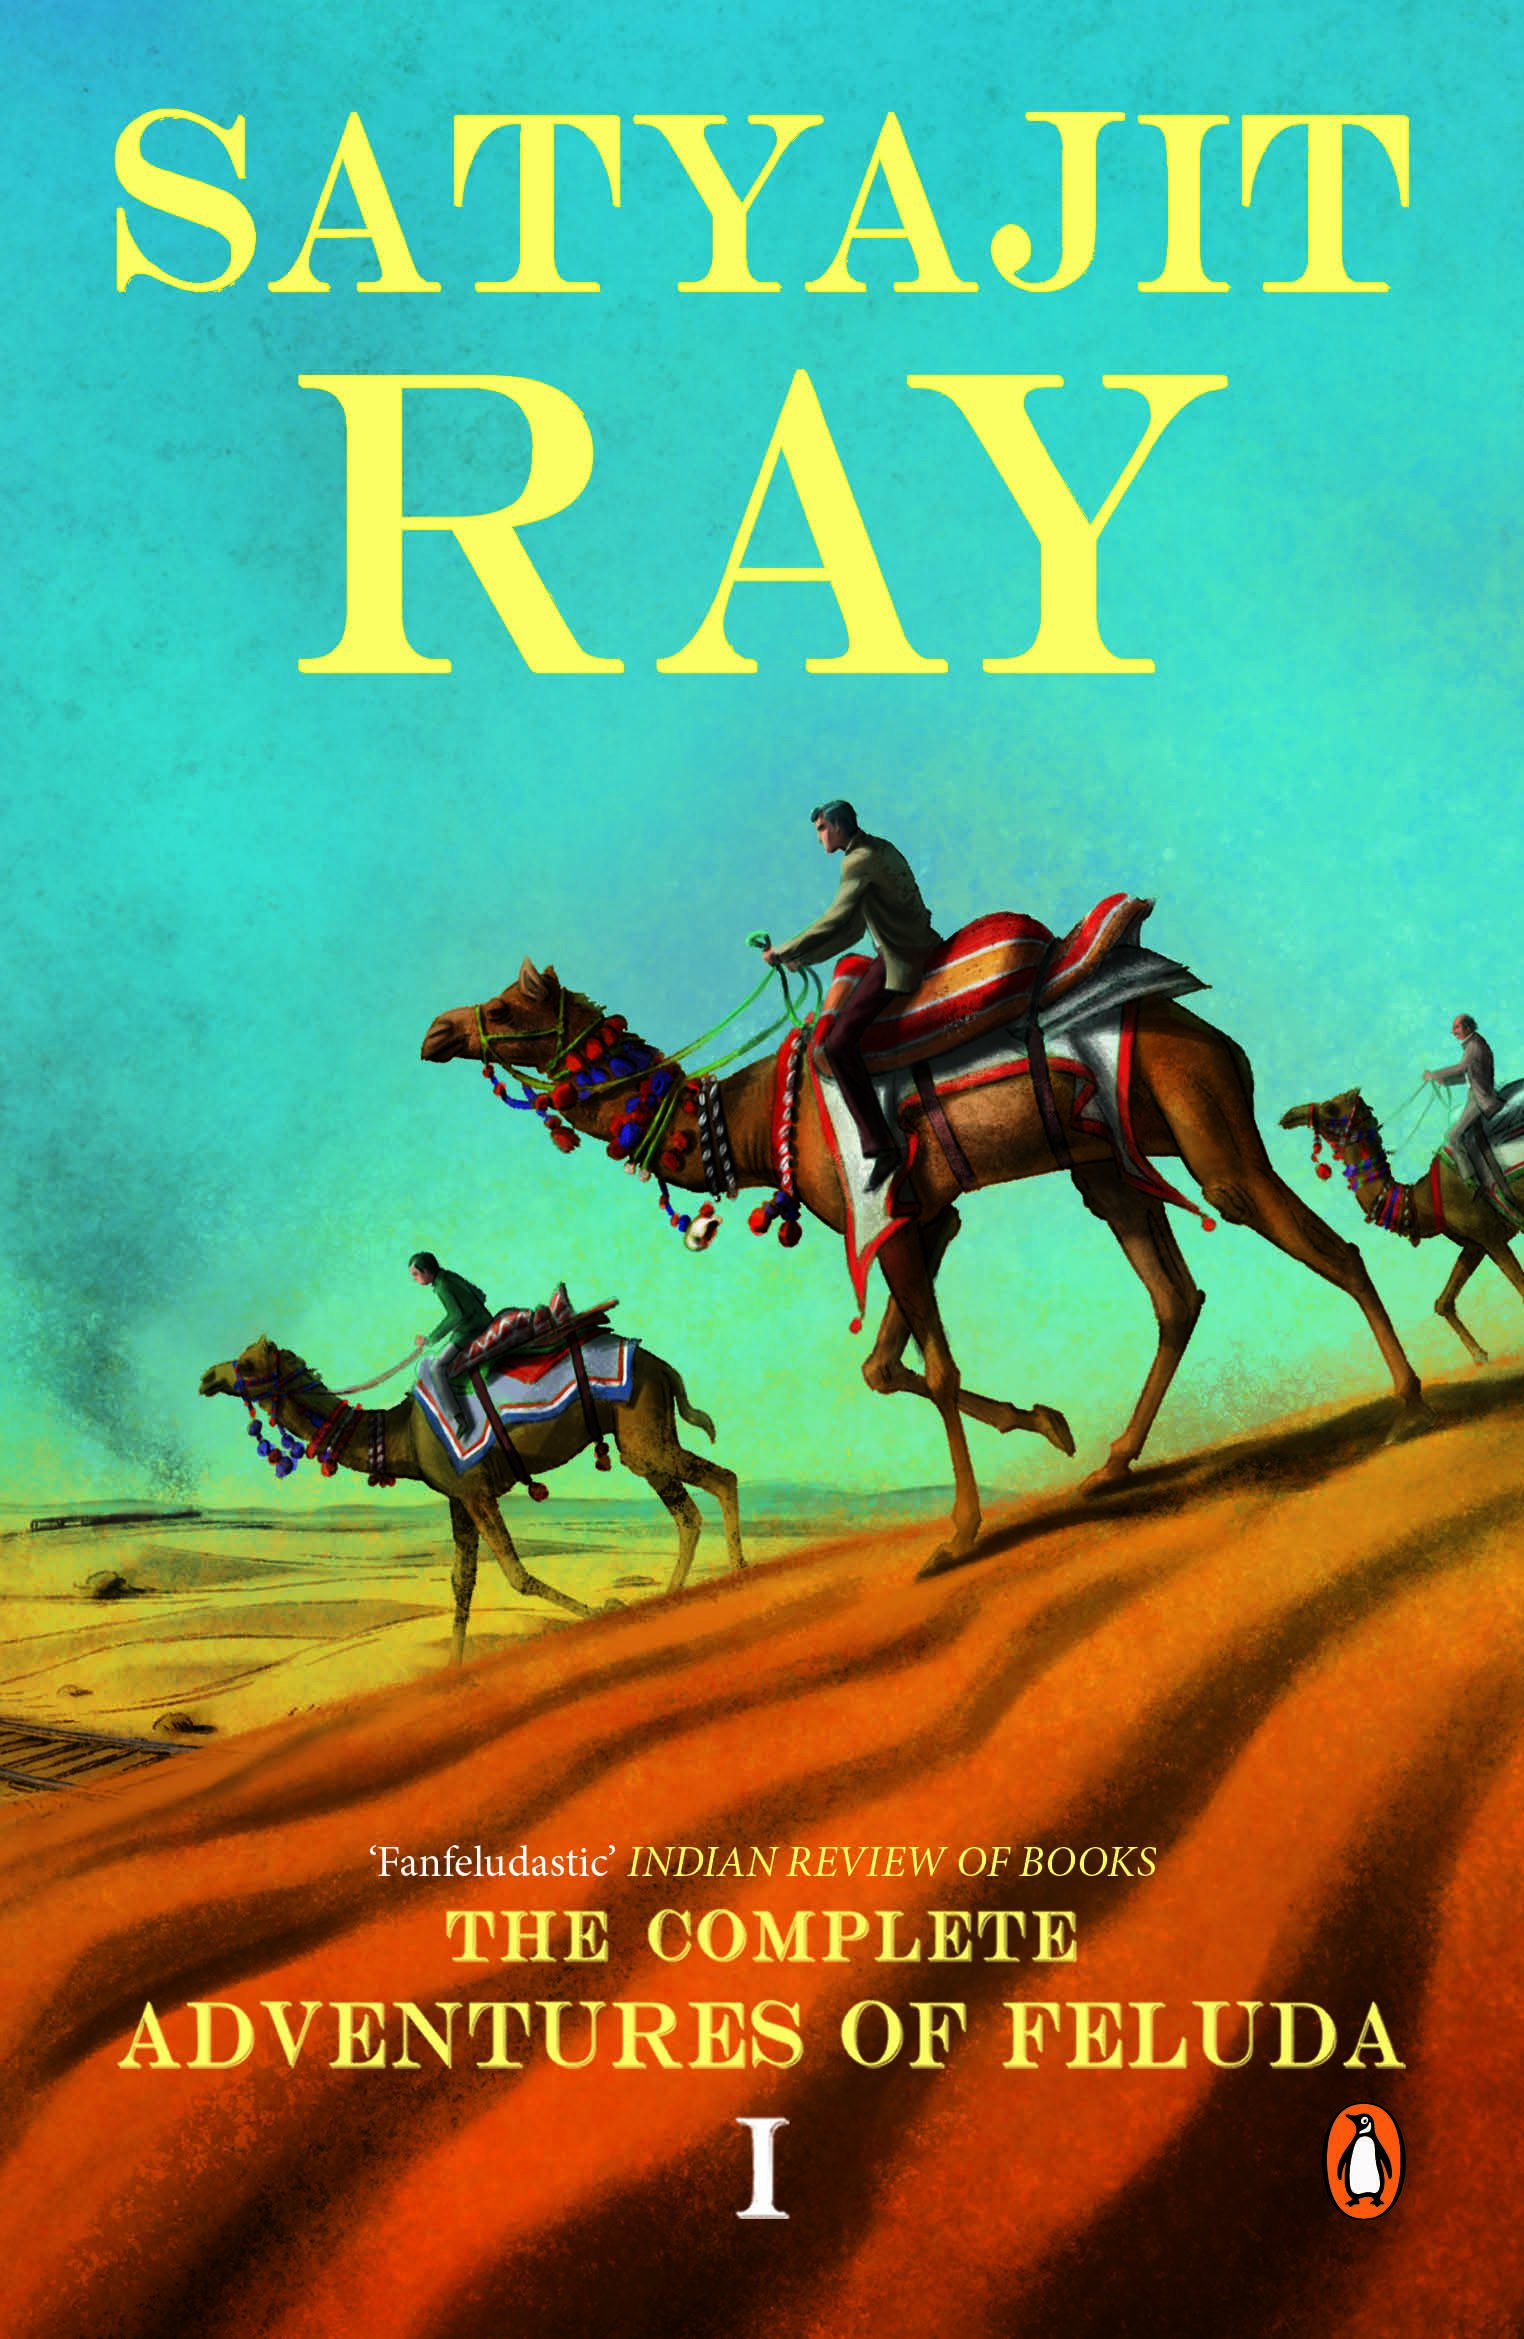 On World Book Day, Read Excerpts From An Essay Written by Satyajit Ray on Science Fiction